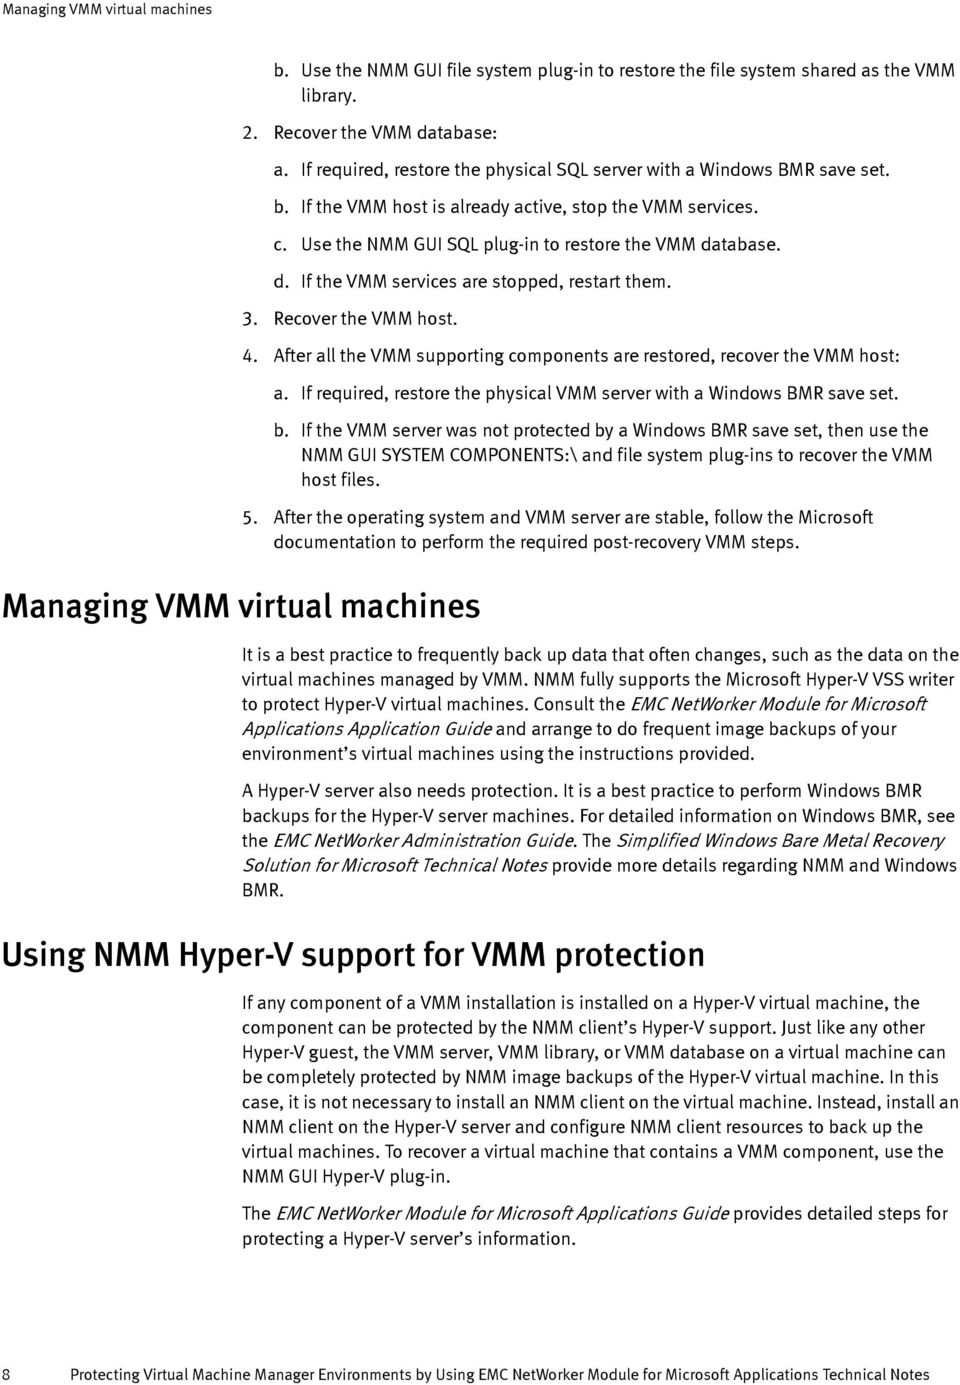 tabase. d. If the VMM services are stopped, restart them. 3. Recover the VMM host. Managing VMM virtual machines 4. After all the VMM supporting components are restored, recover the VMM host: a.